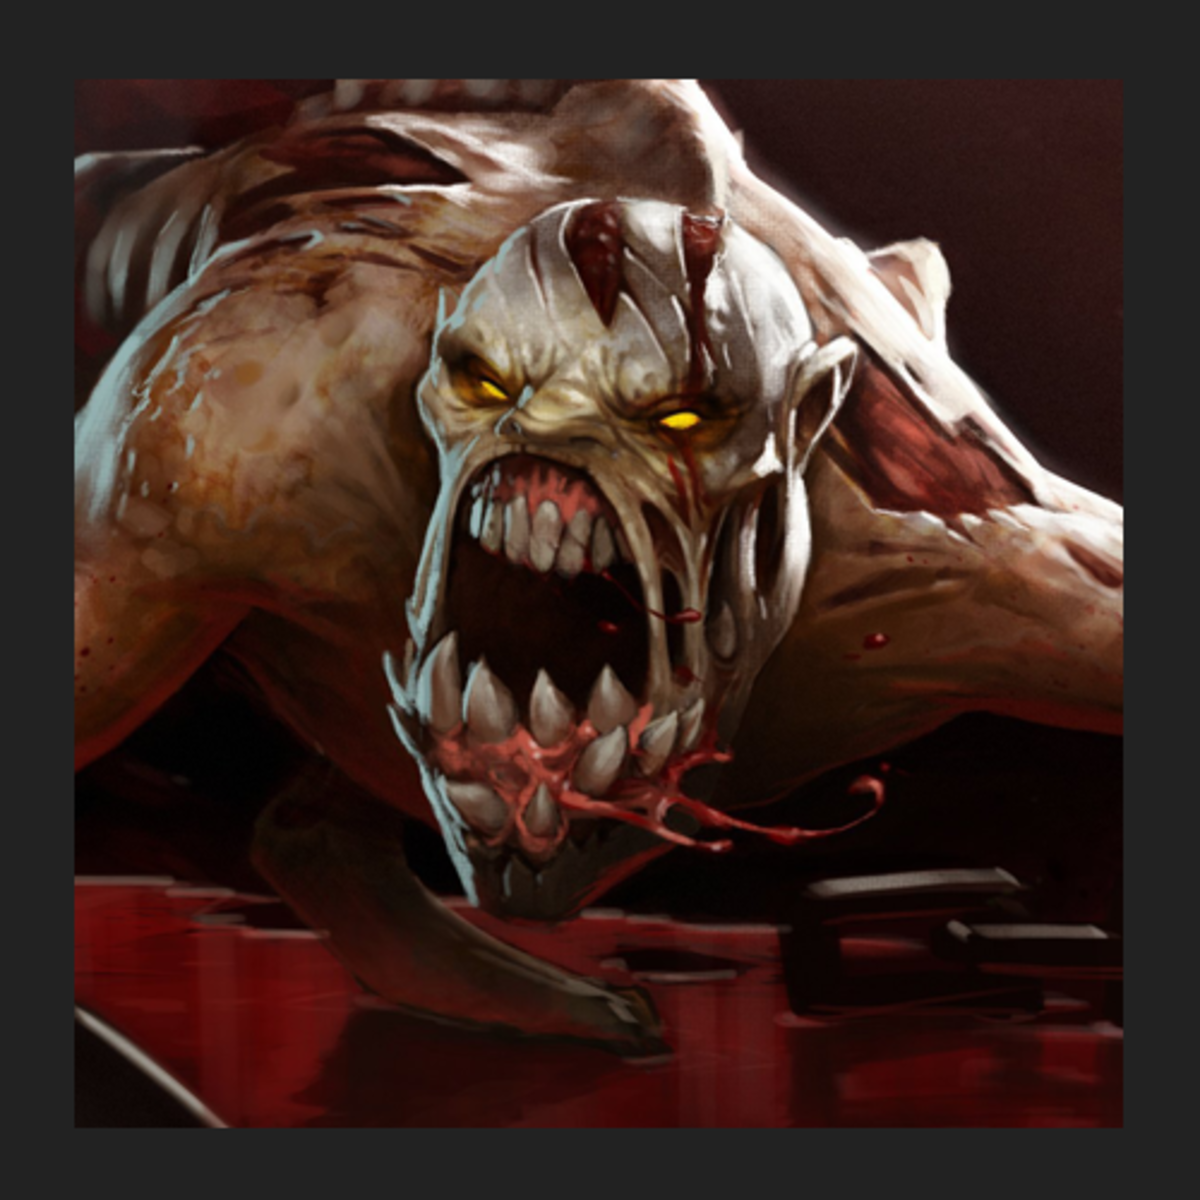 Naix the Lifestealer DOTA 2 adaptation